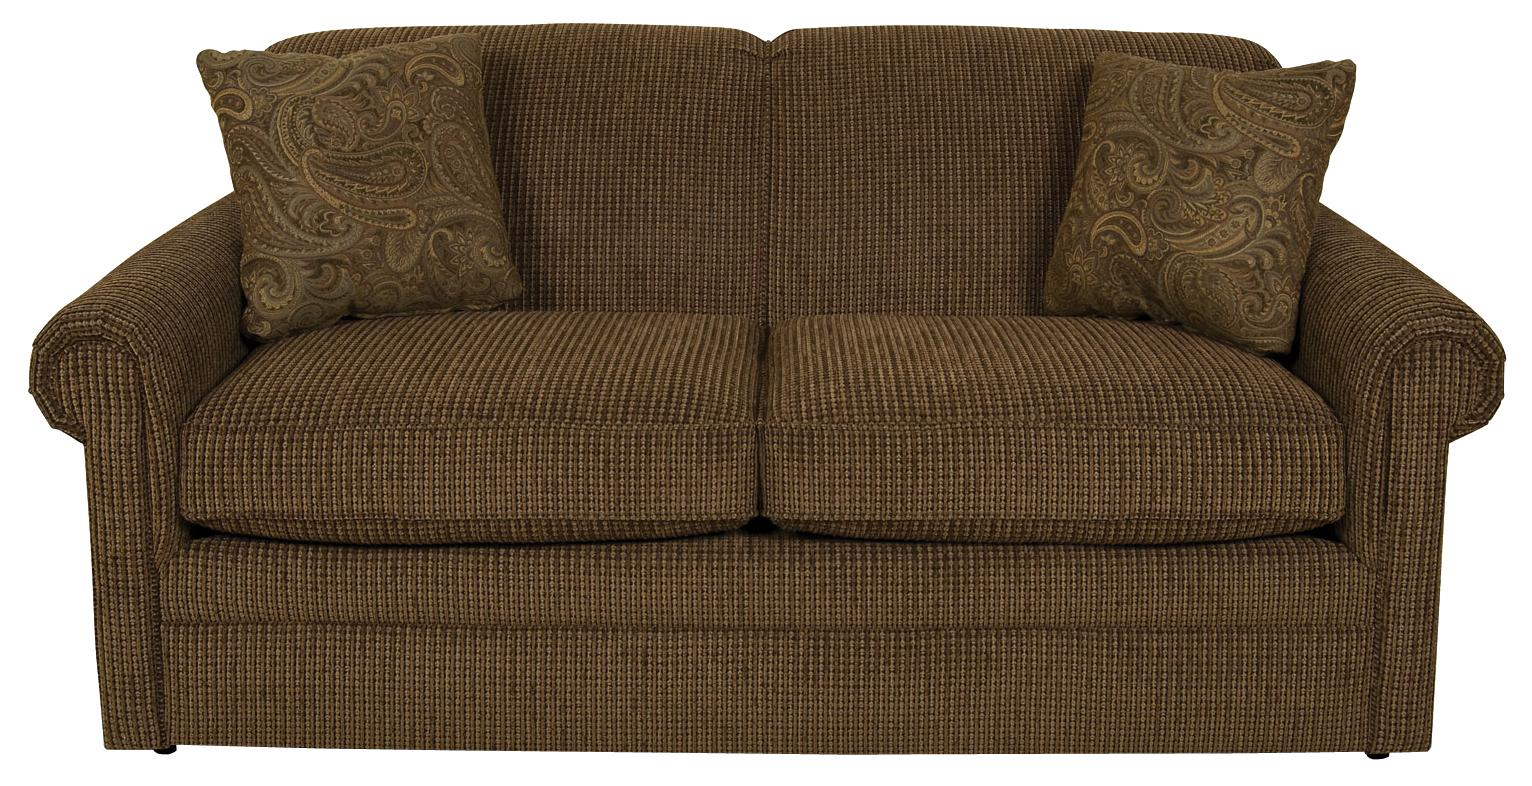 Savona Visco Full Sleeper Loveseat by England at Gill Brothers Furniture